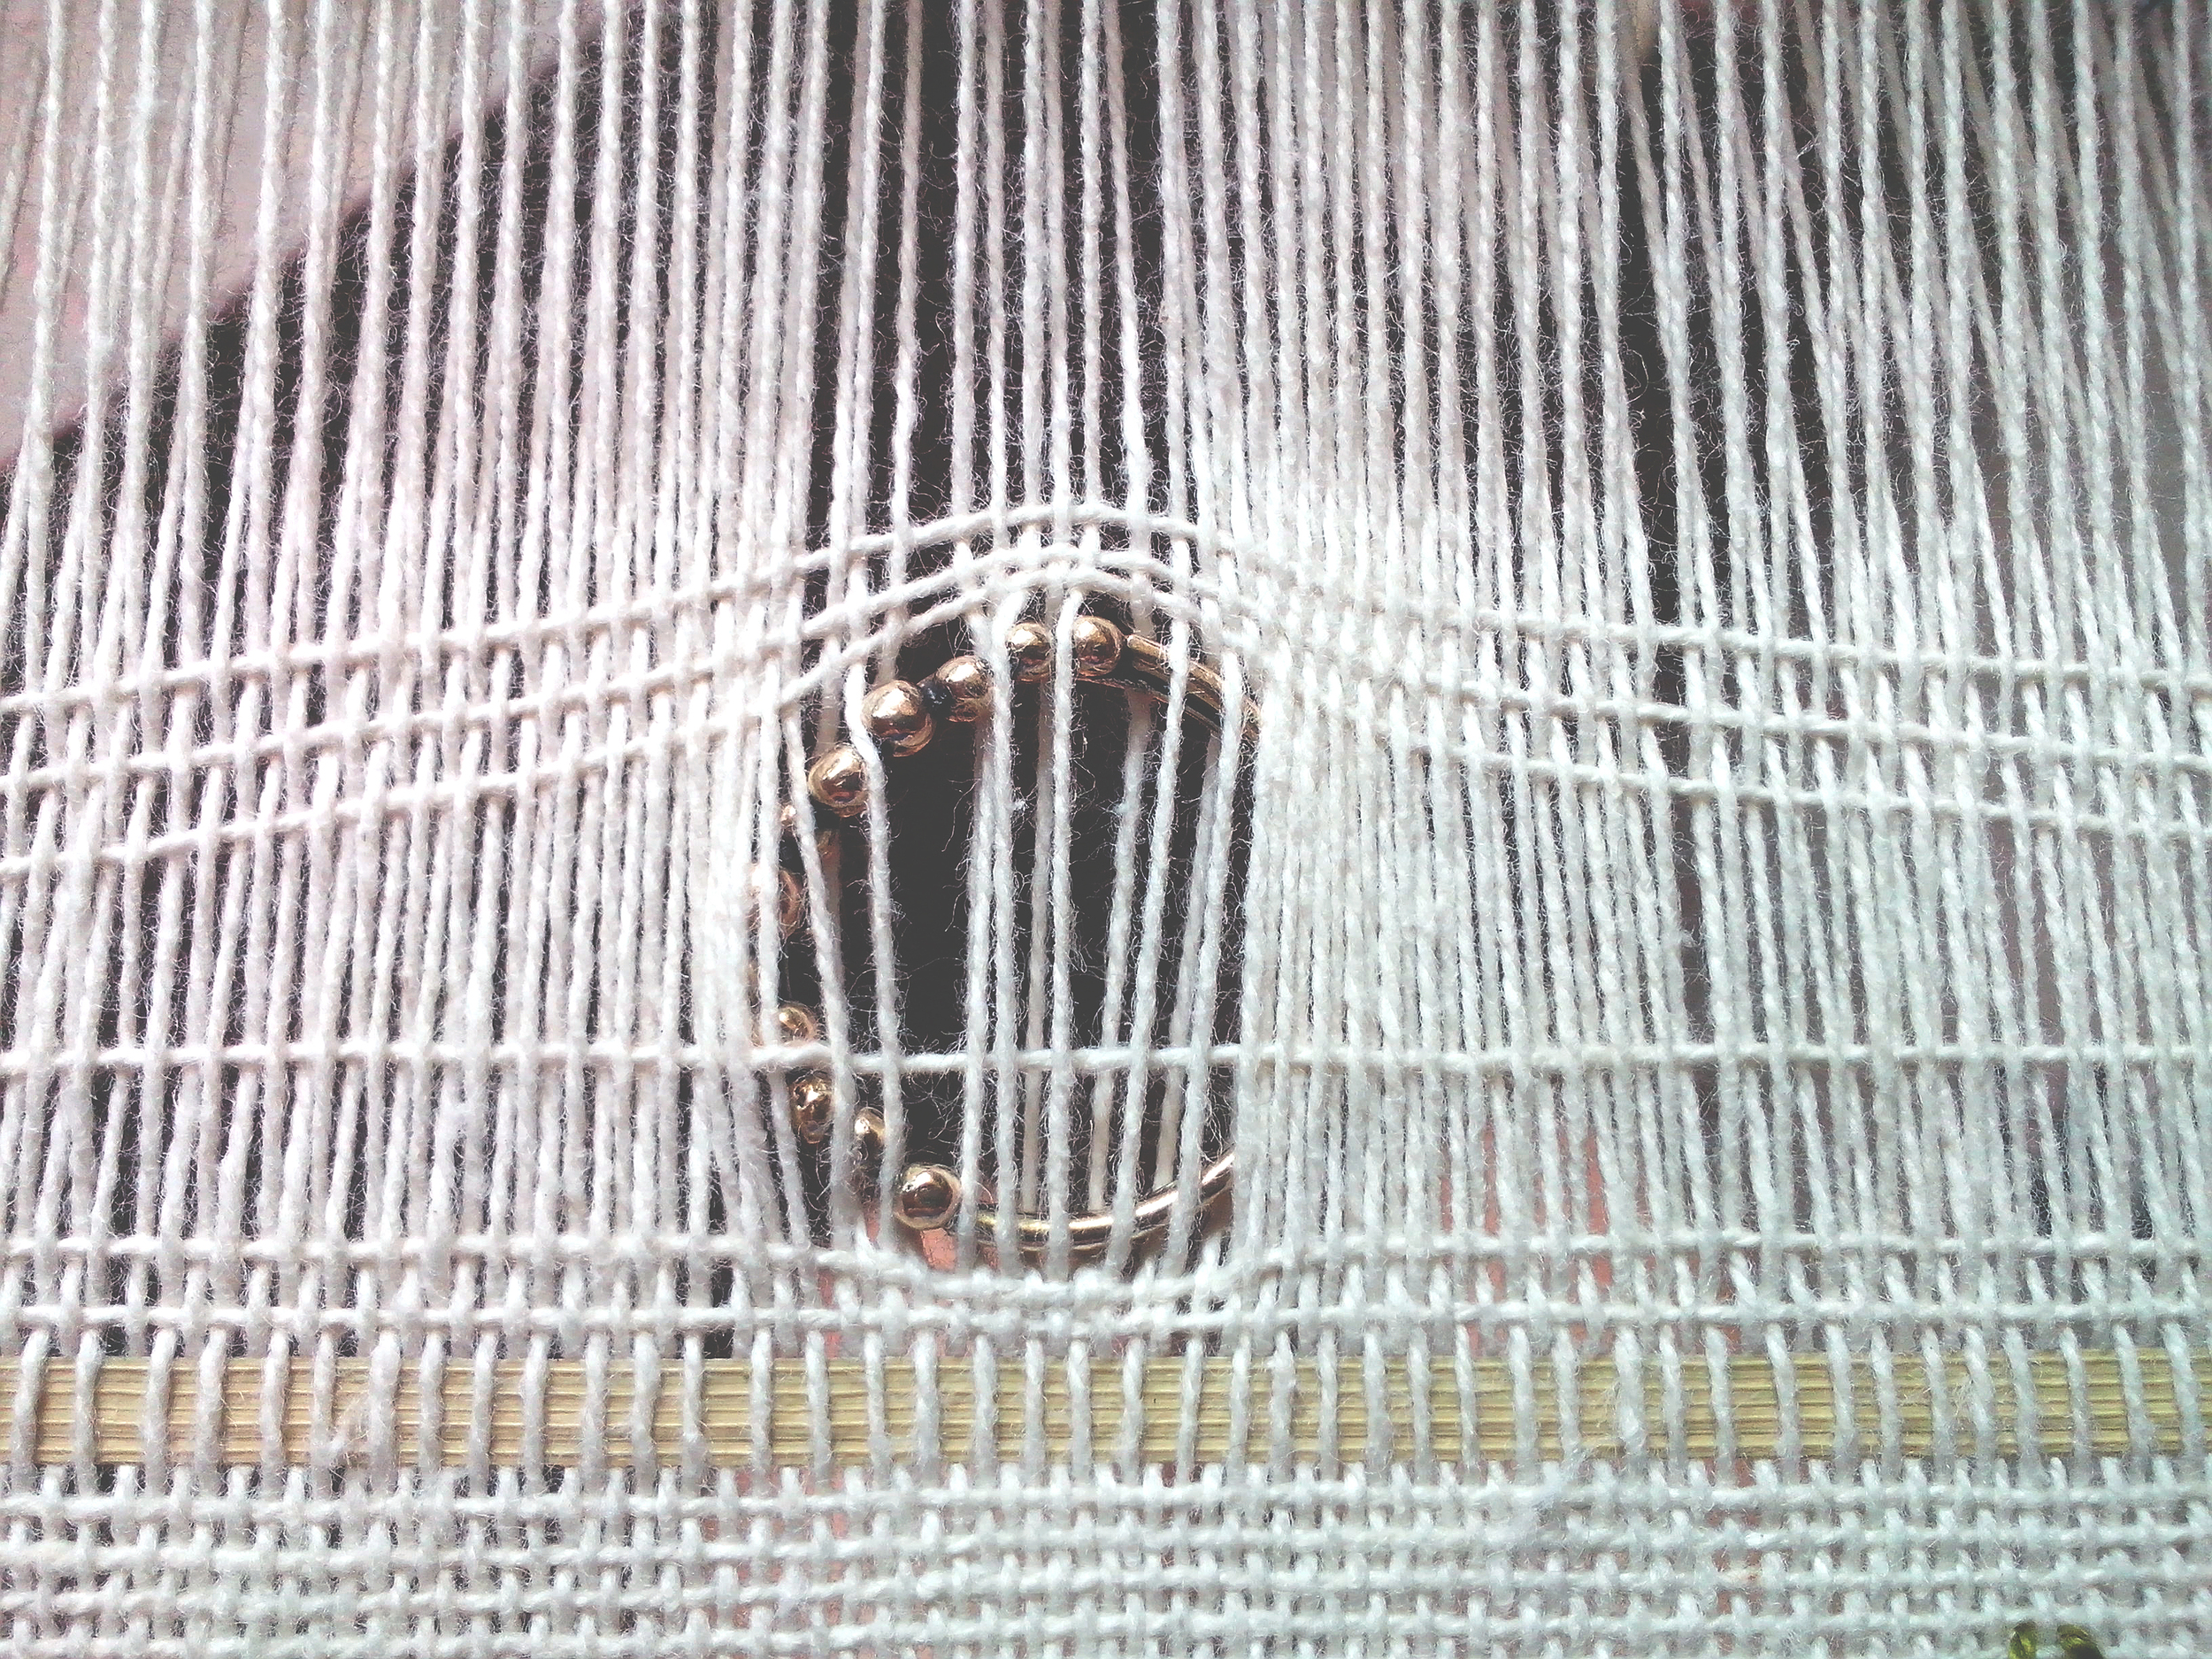 Experiments in the weave, ring and palm leaf